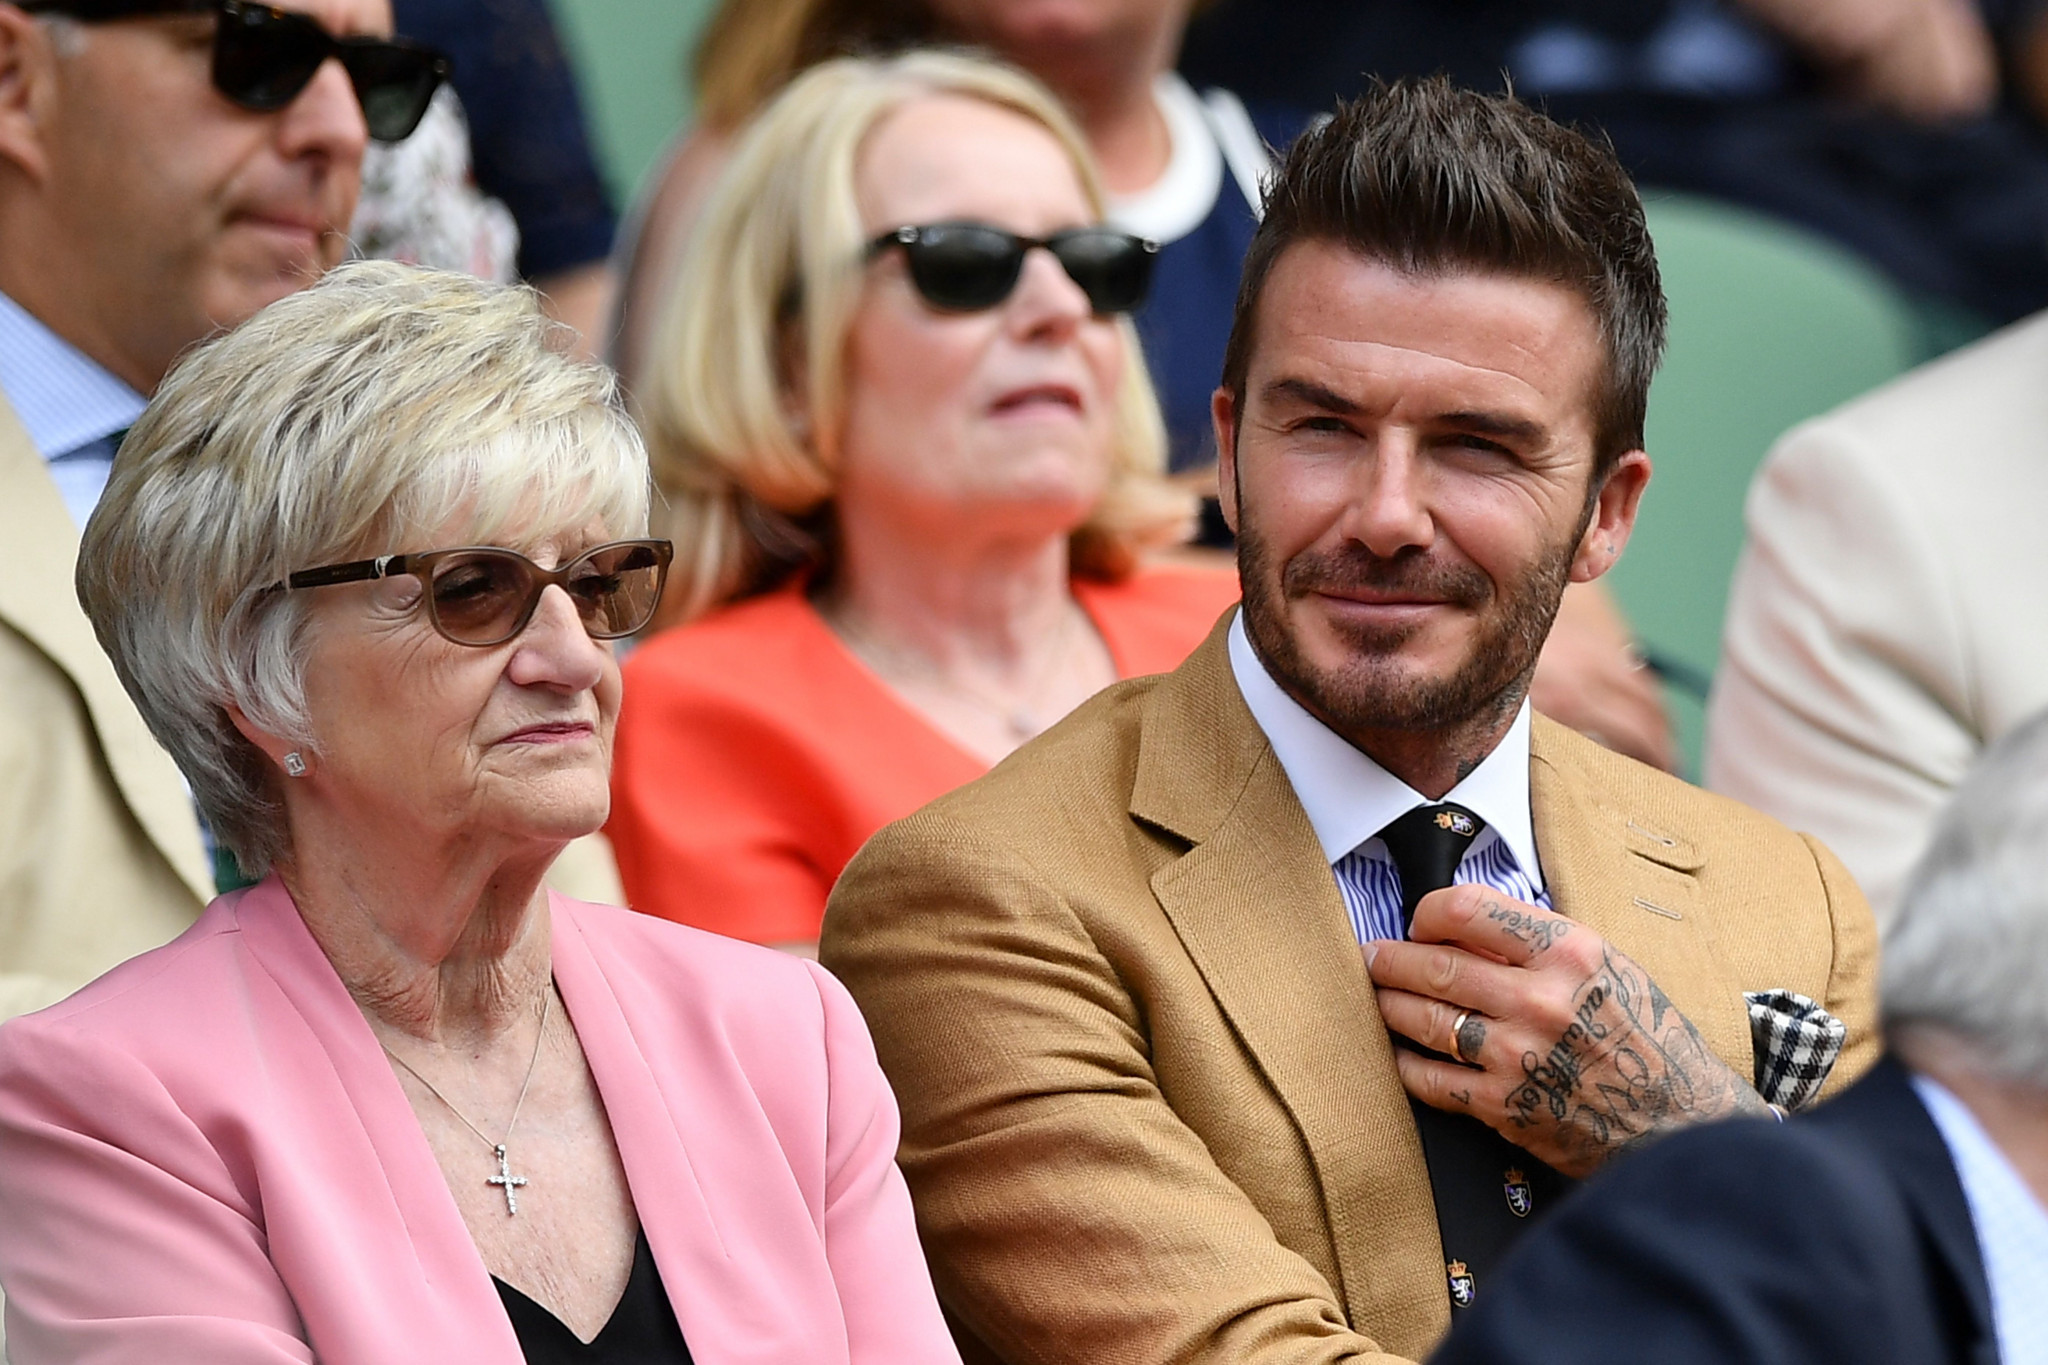 Former England football captain David Beckham was among those watching the match from the Royal Box ©Getty Images